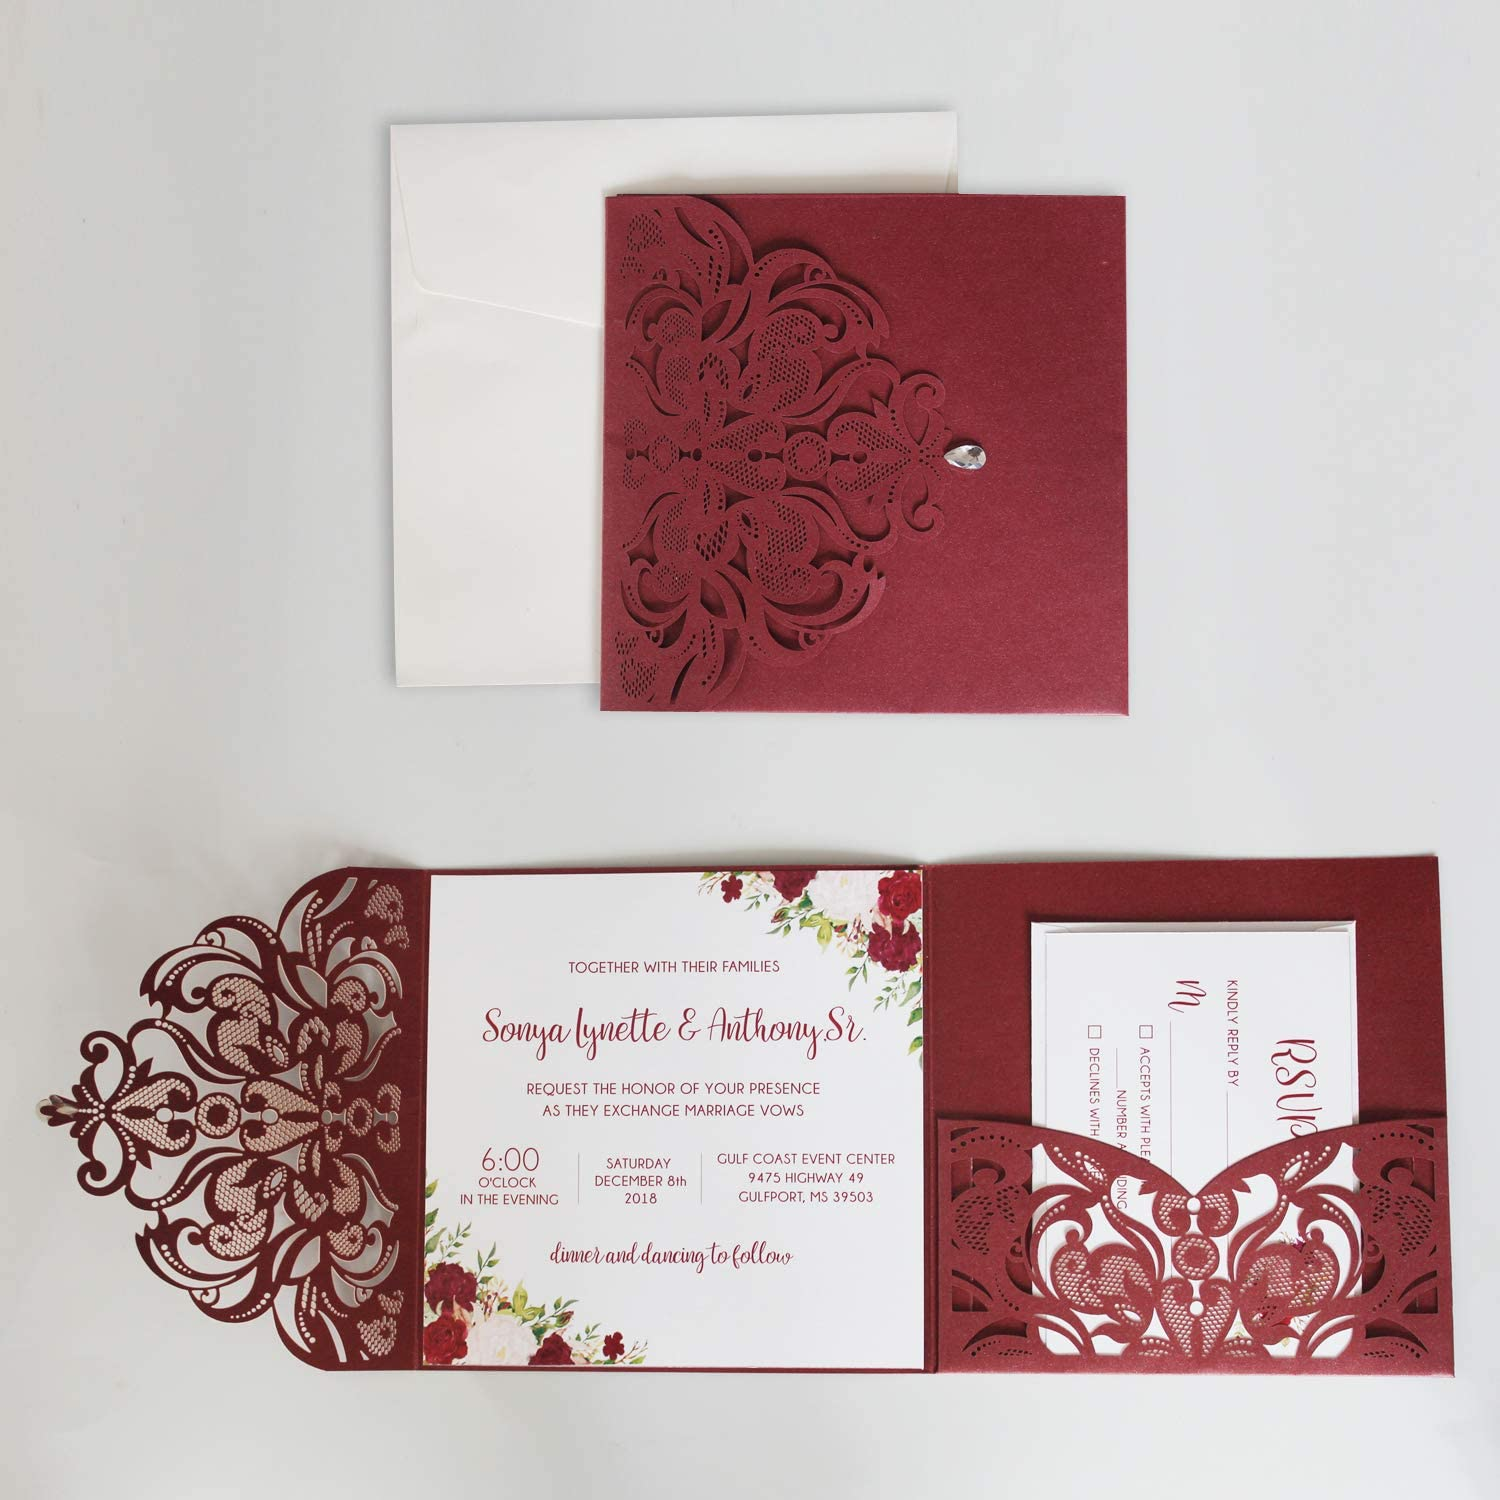 Picky Bride Elegant Wedding Invitations Rose Wine Laser Cut Wedding Invites for Burgundy Wedding - Set of 50pcs